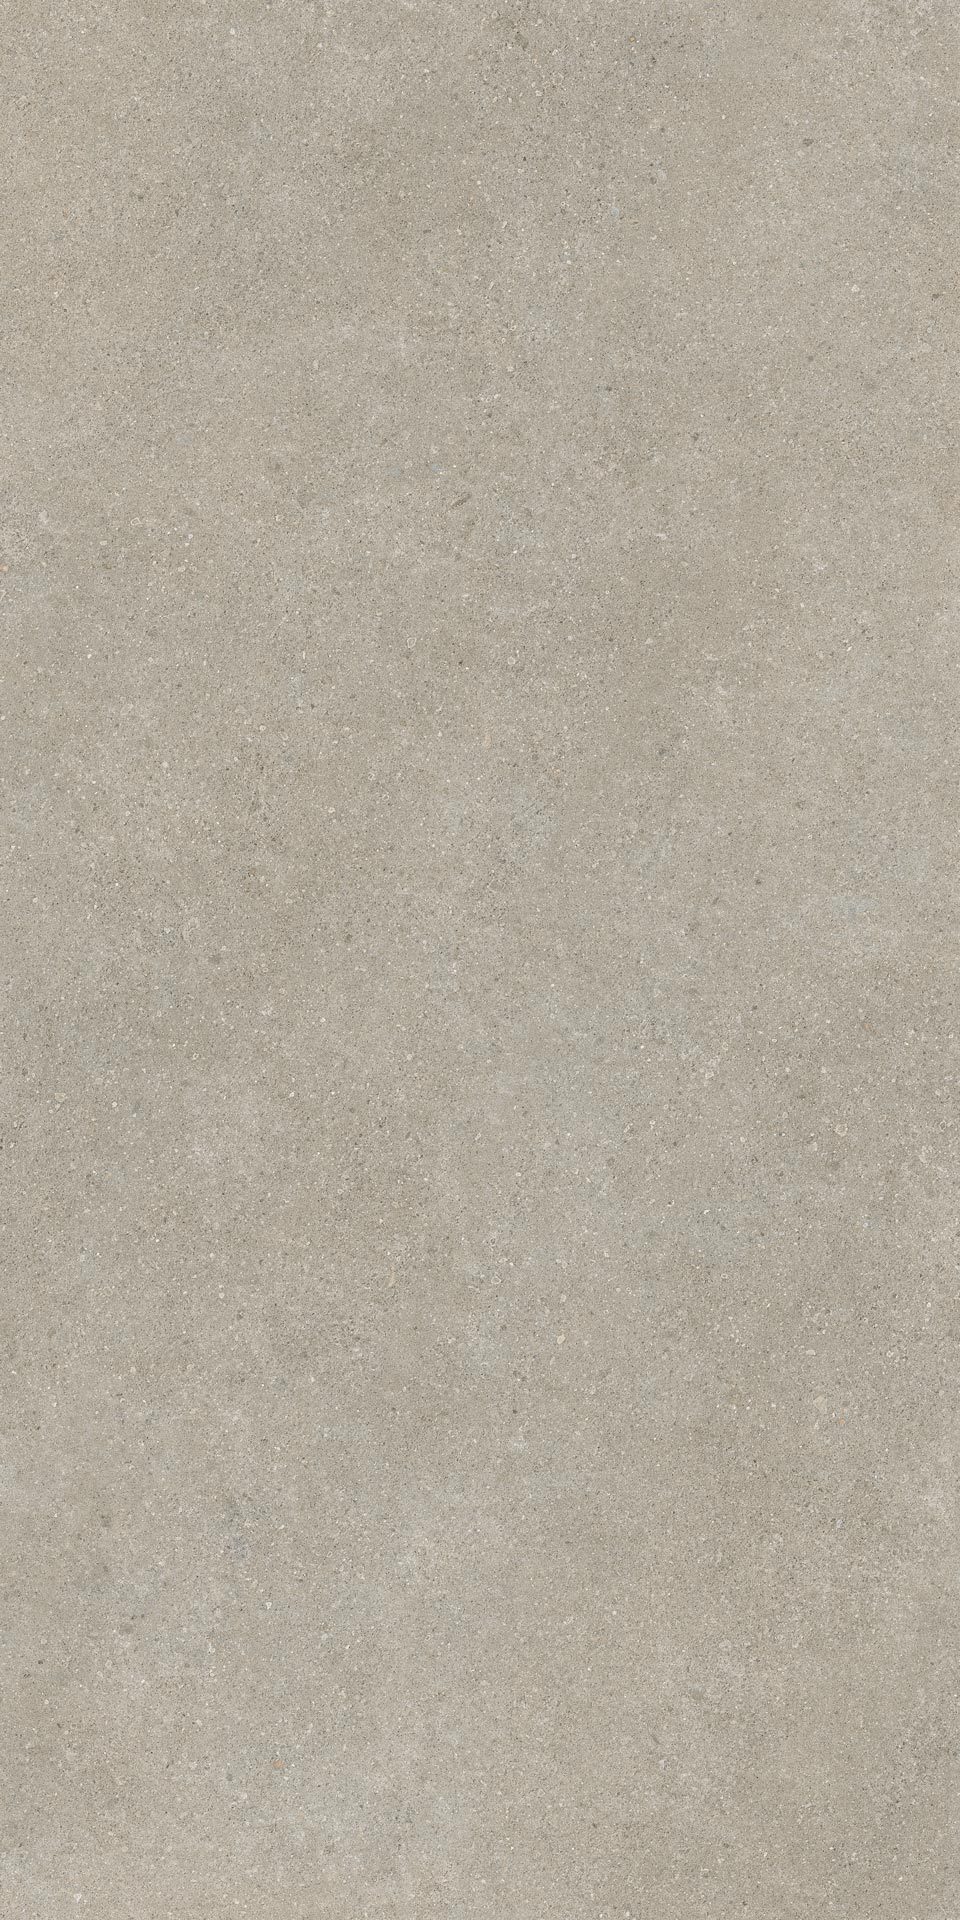 kone-pearl-large-surface-in-porcelain-tile-for-indoors-and-outdoors-atlas-plan